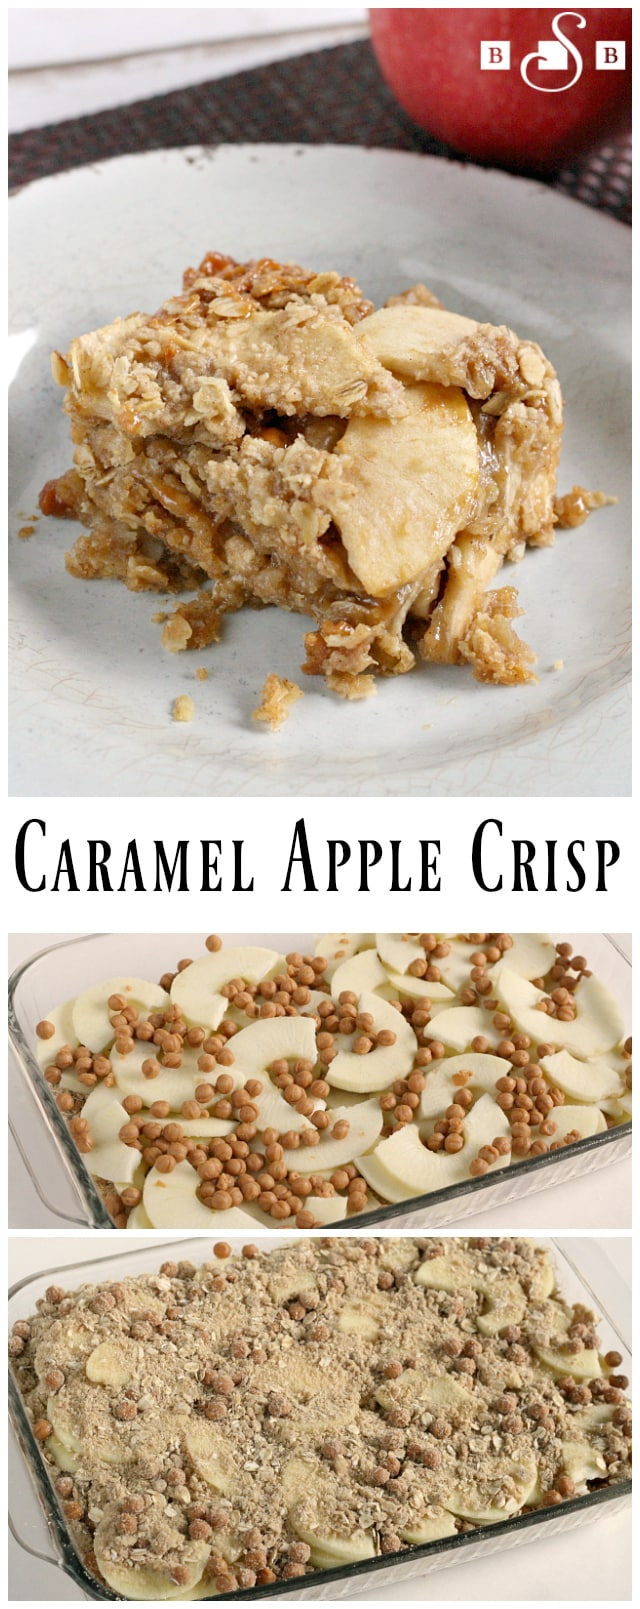 Vanilla Apple Crisp With Caramel Sauce Recipe — Dishmaps